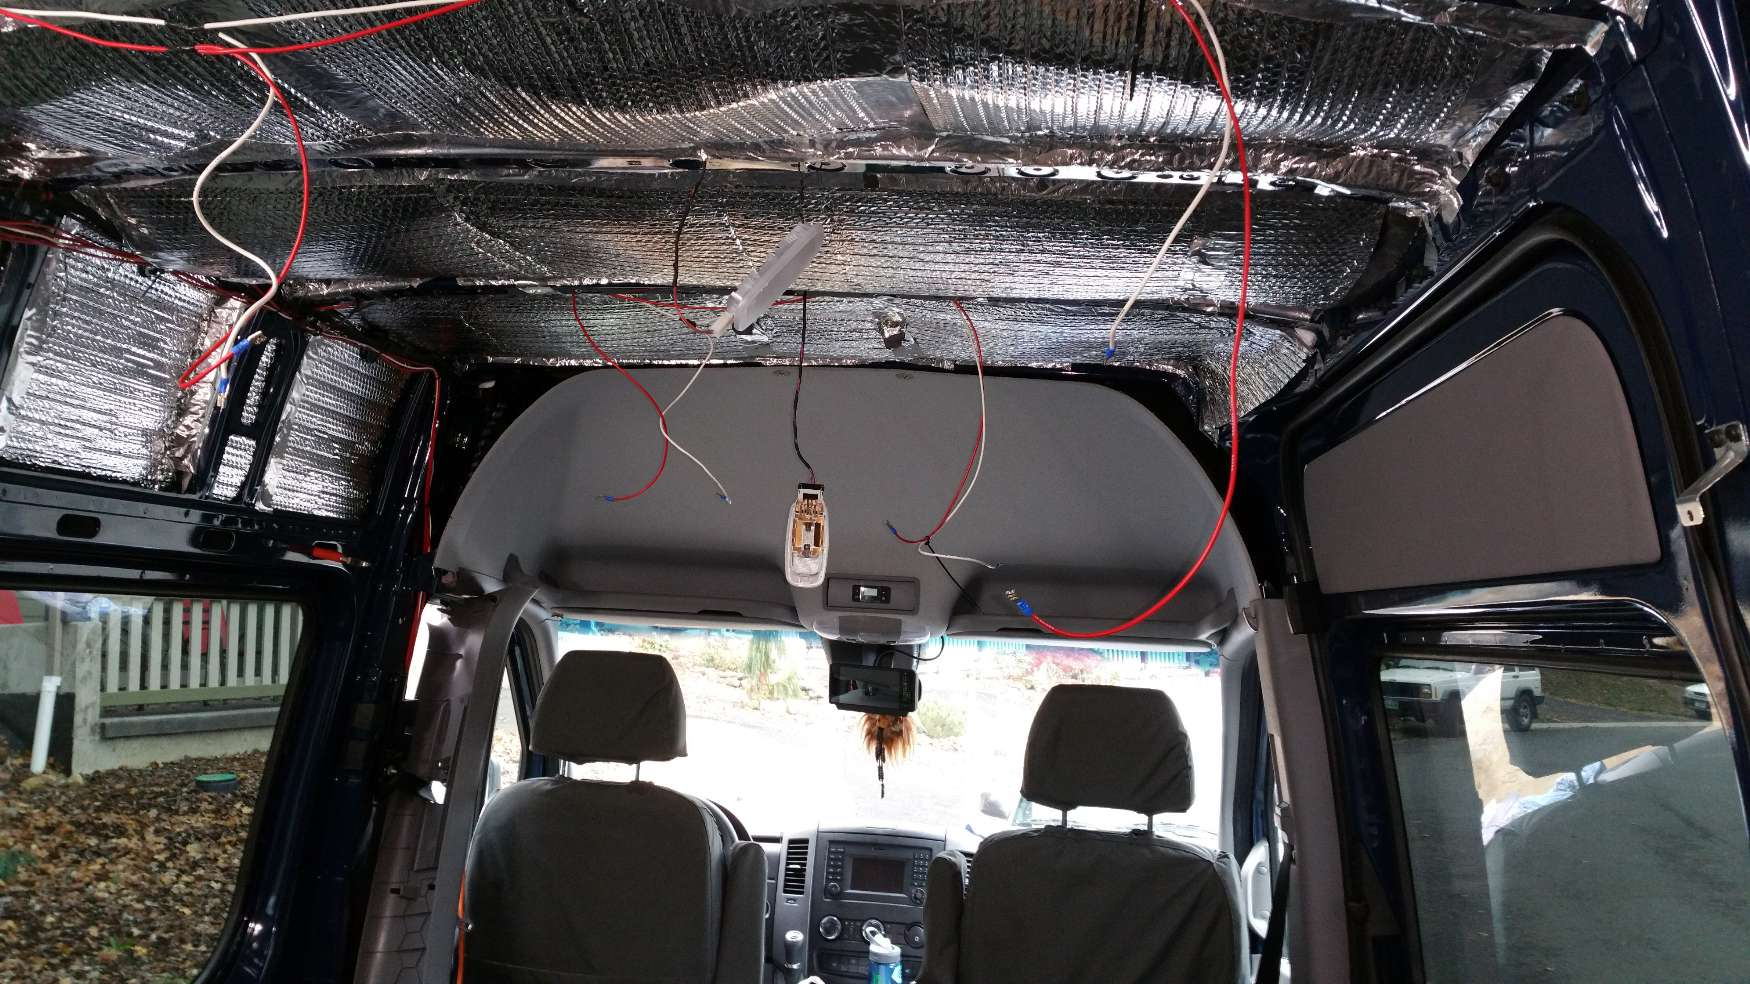 converting a sprinter van to a camper installing the electricalwires, wires everywhere